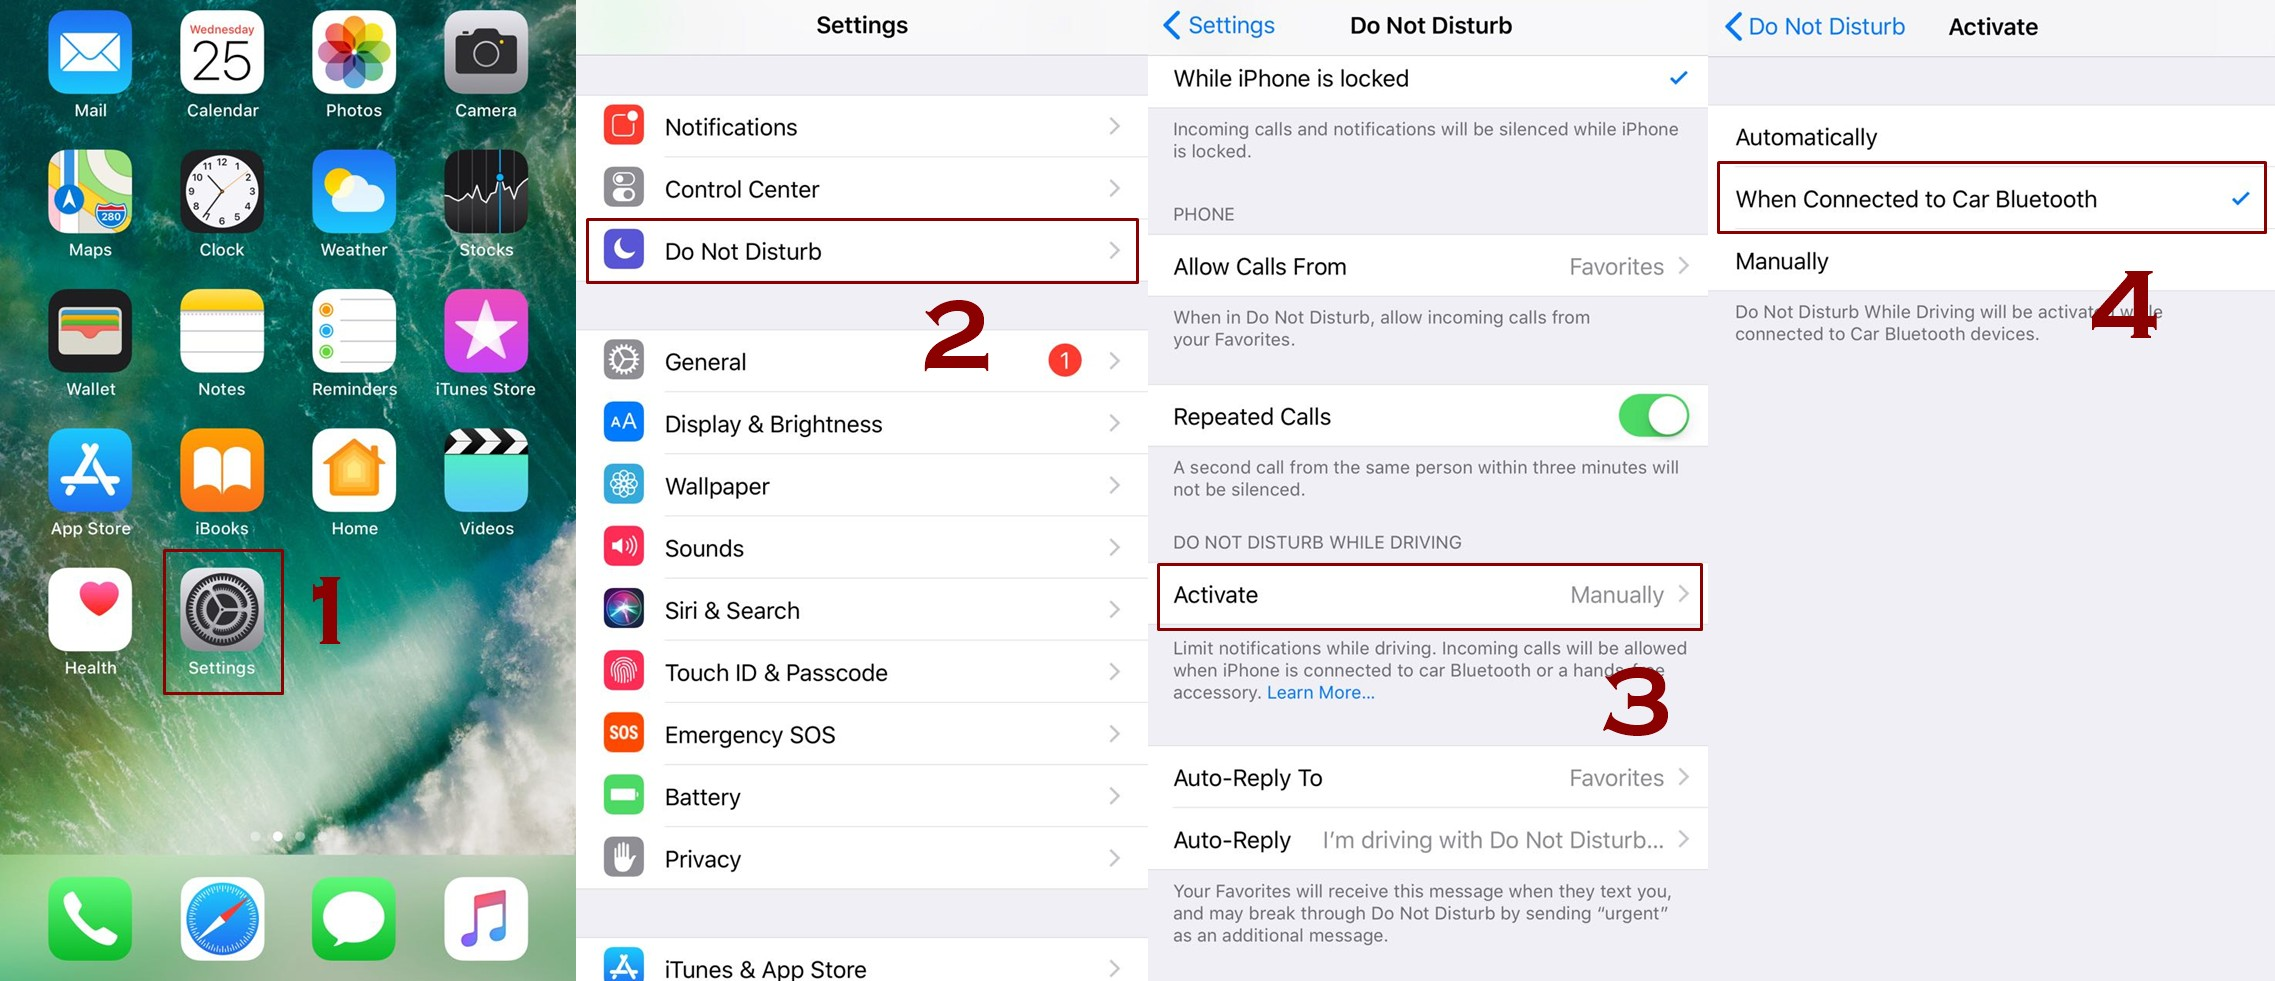 how to enable do not disturb while driving mode iphone - How to Enable or Disable Do Not Disturb while driving Mode on iPhone